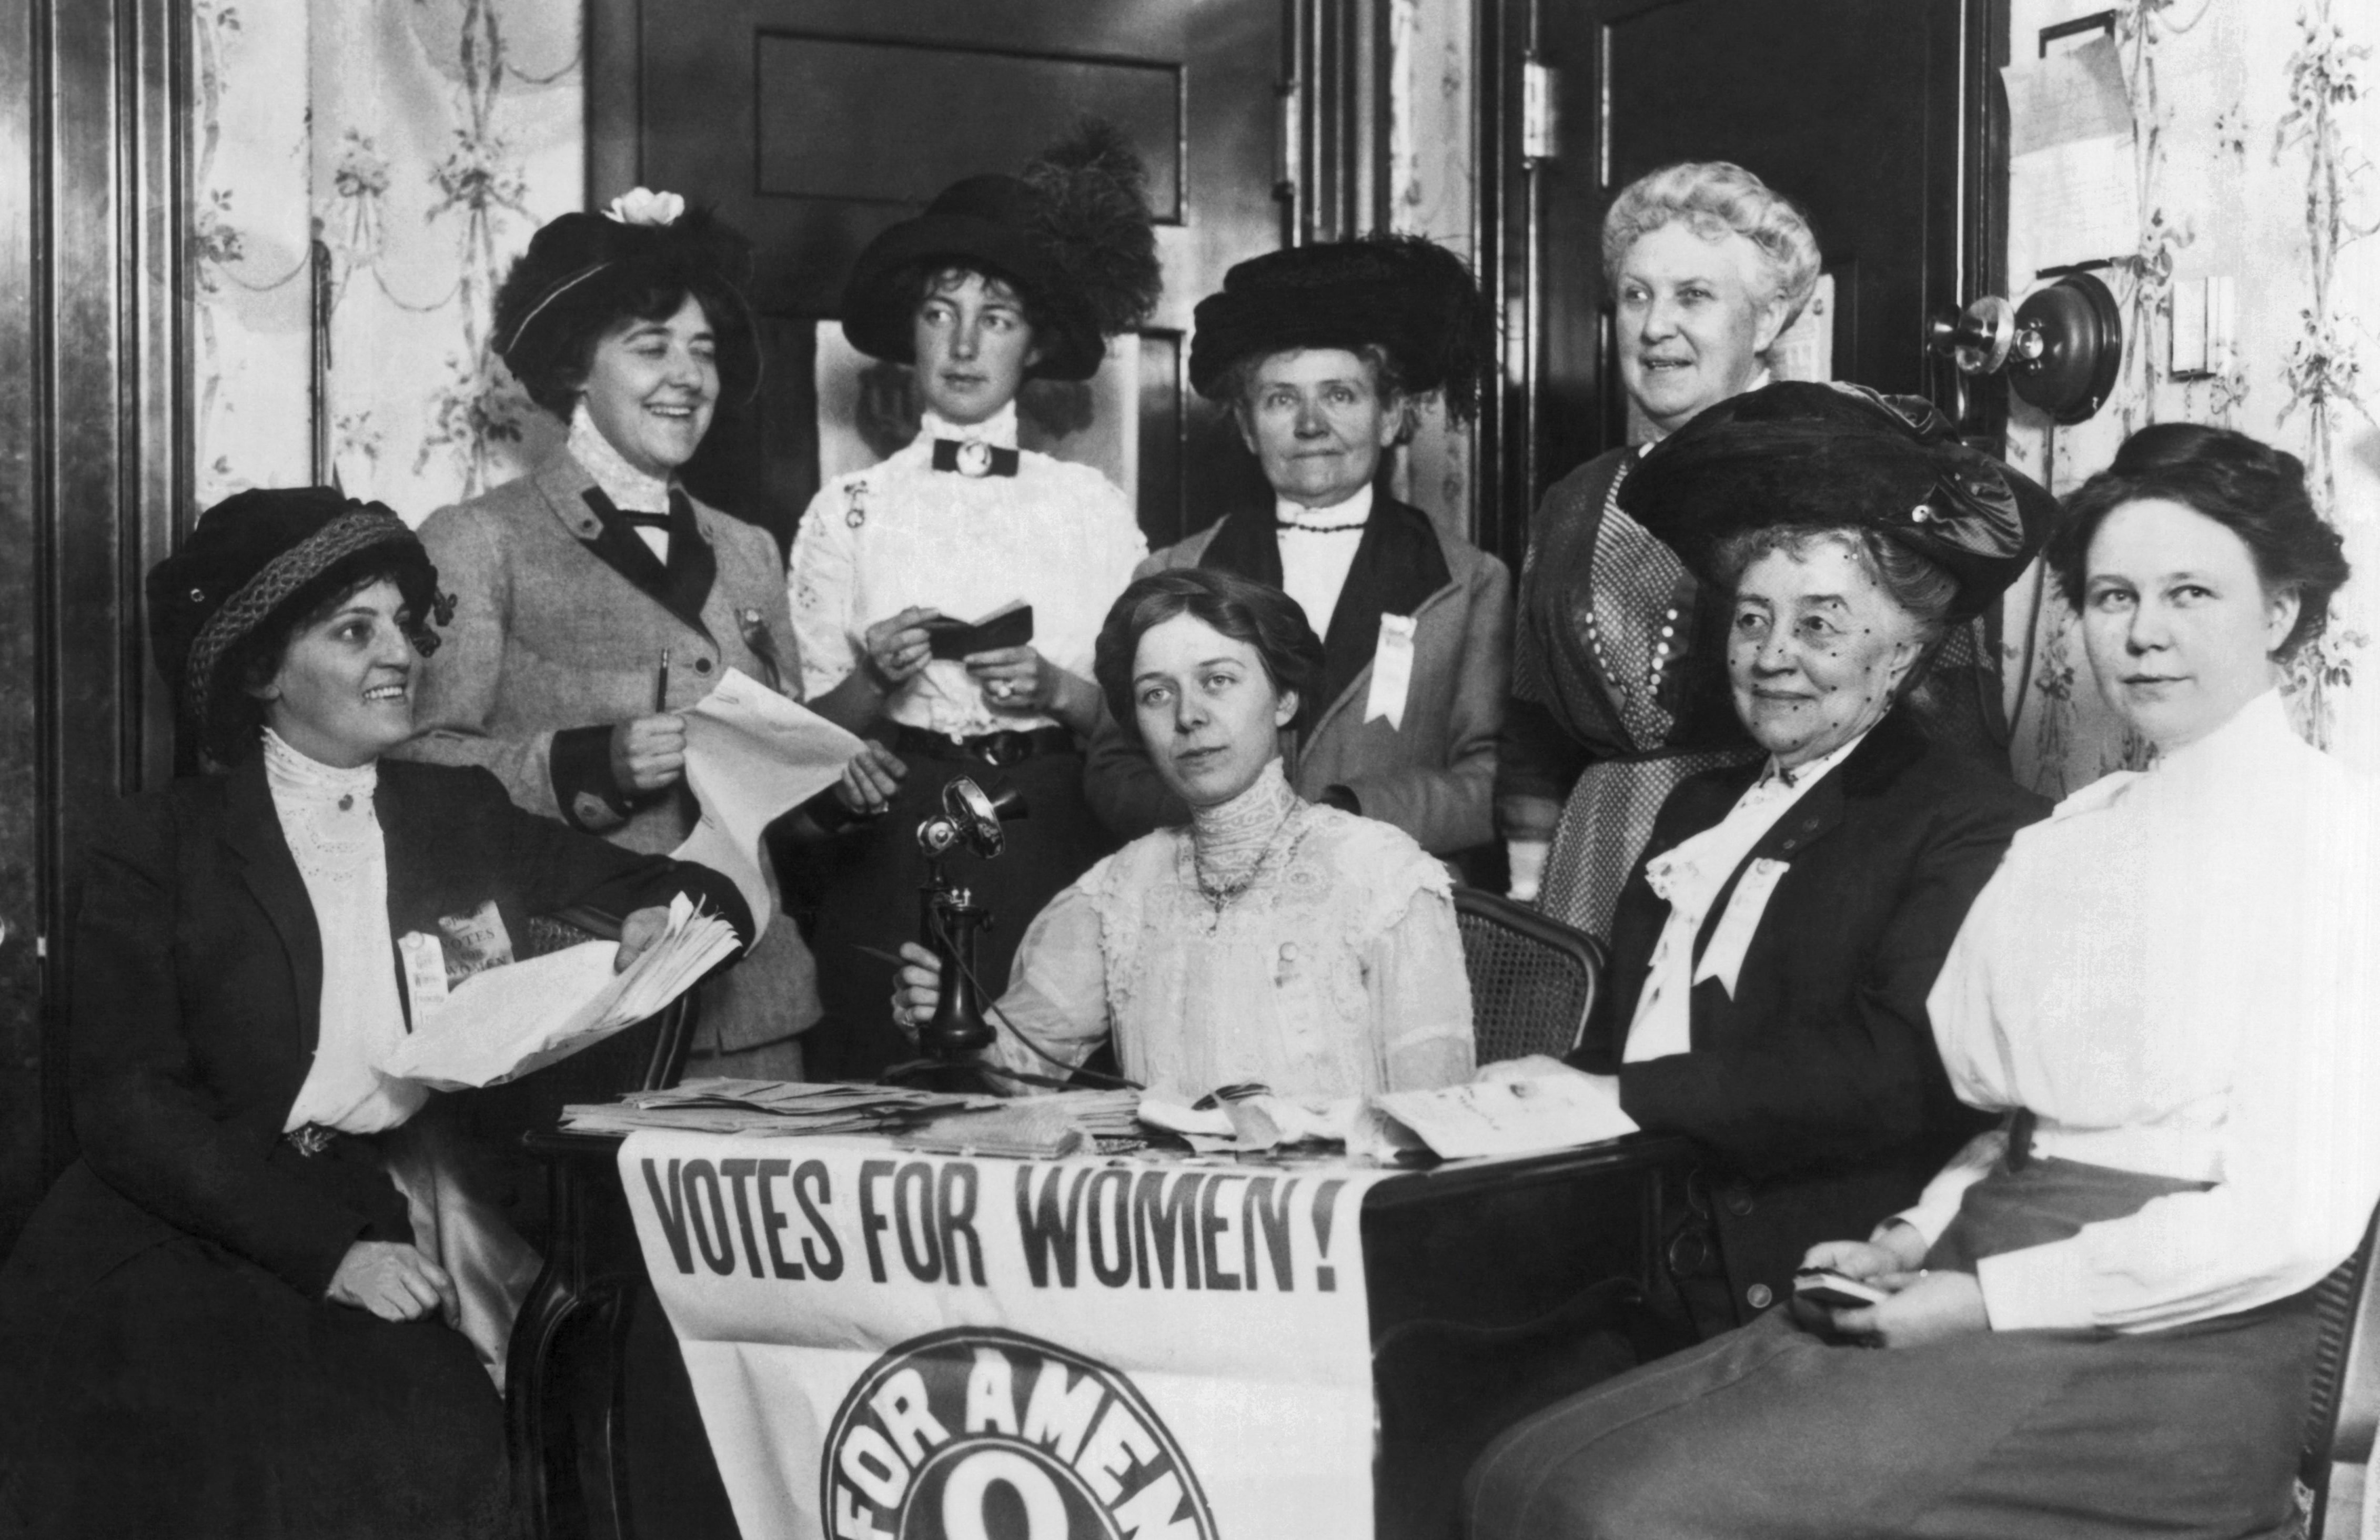 Mandatory Credit: Photo by Underwood Archives/UIG/Shutterstock (3838161a) San Francisco, California: c. 1920 San Francisco women join others in the country to secure the passage of the 19th Amendent which grants women the right to vote. VARIOUS